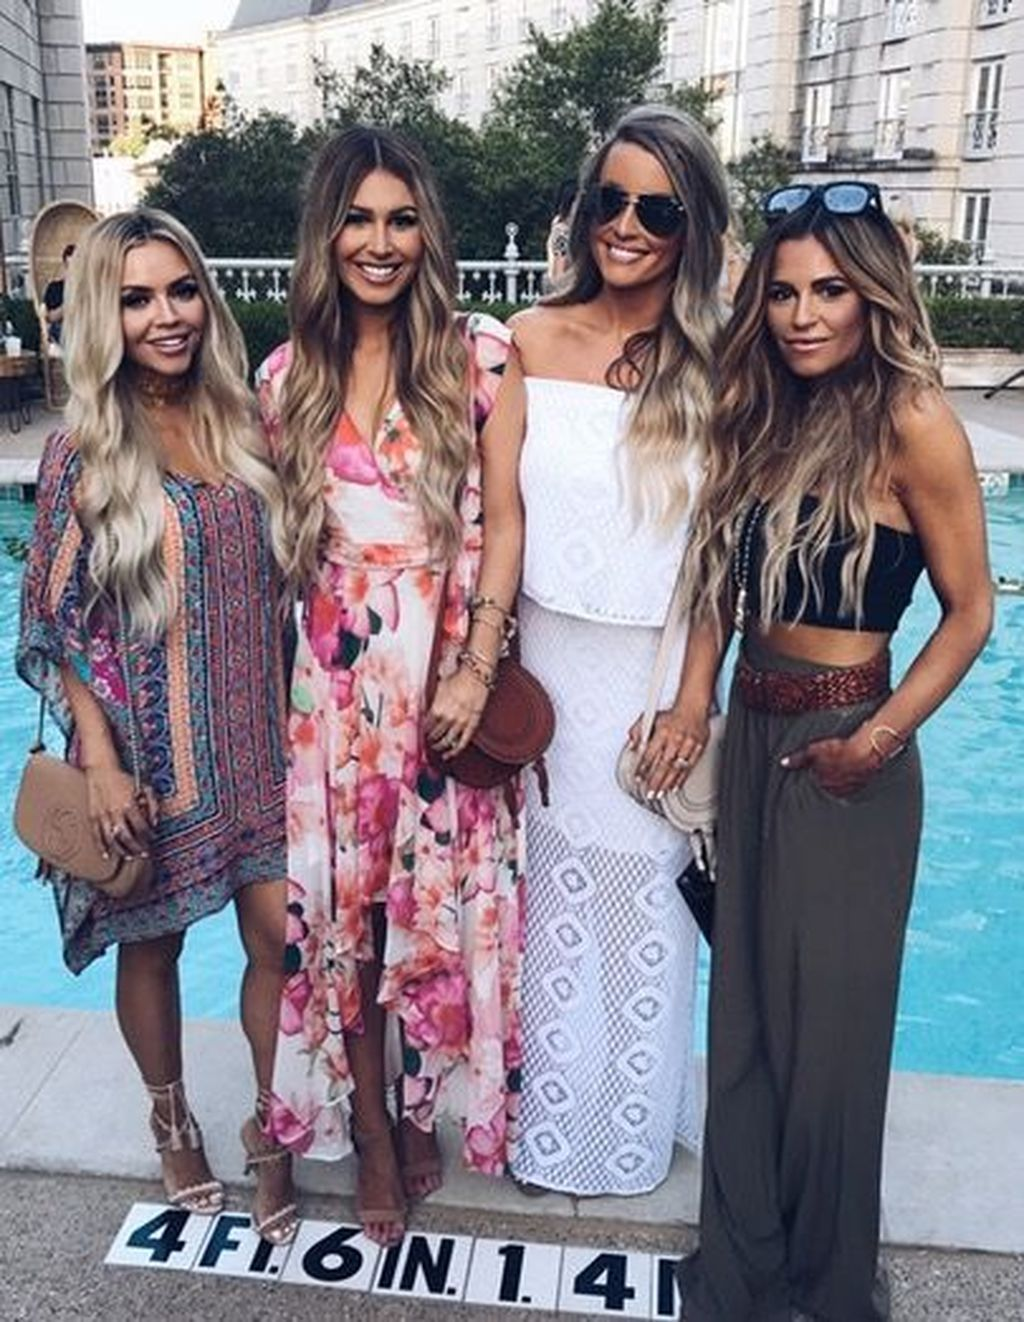 45 Elegant Night Party Outfits Ideas For Spring In 2020 Party